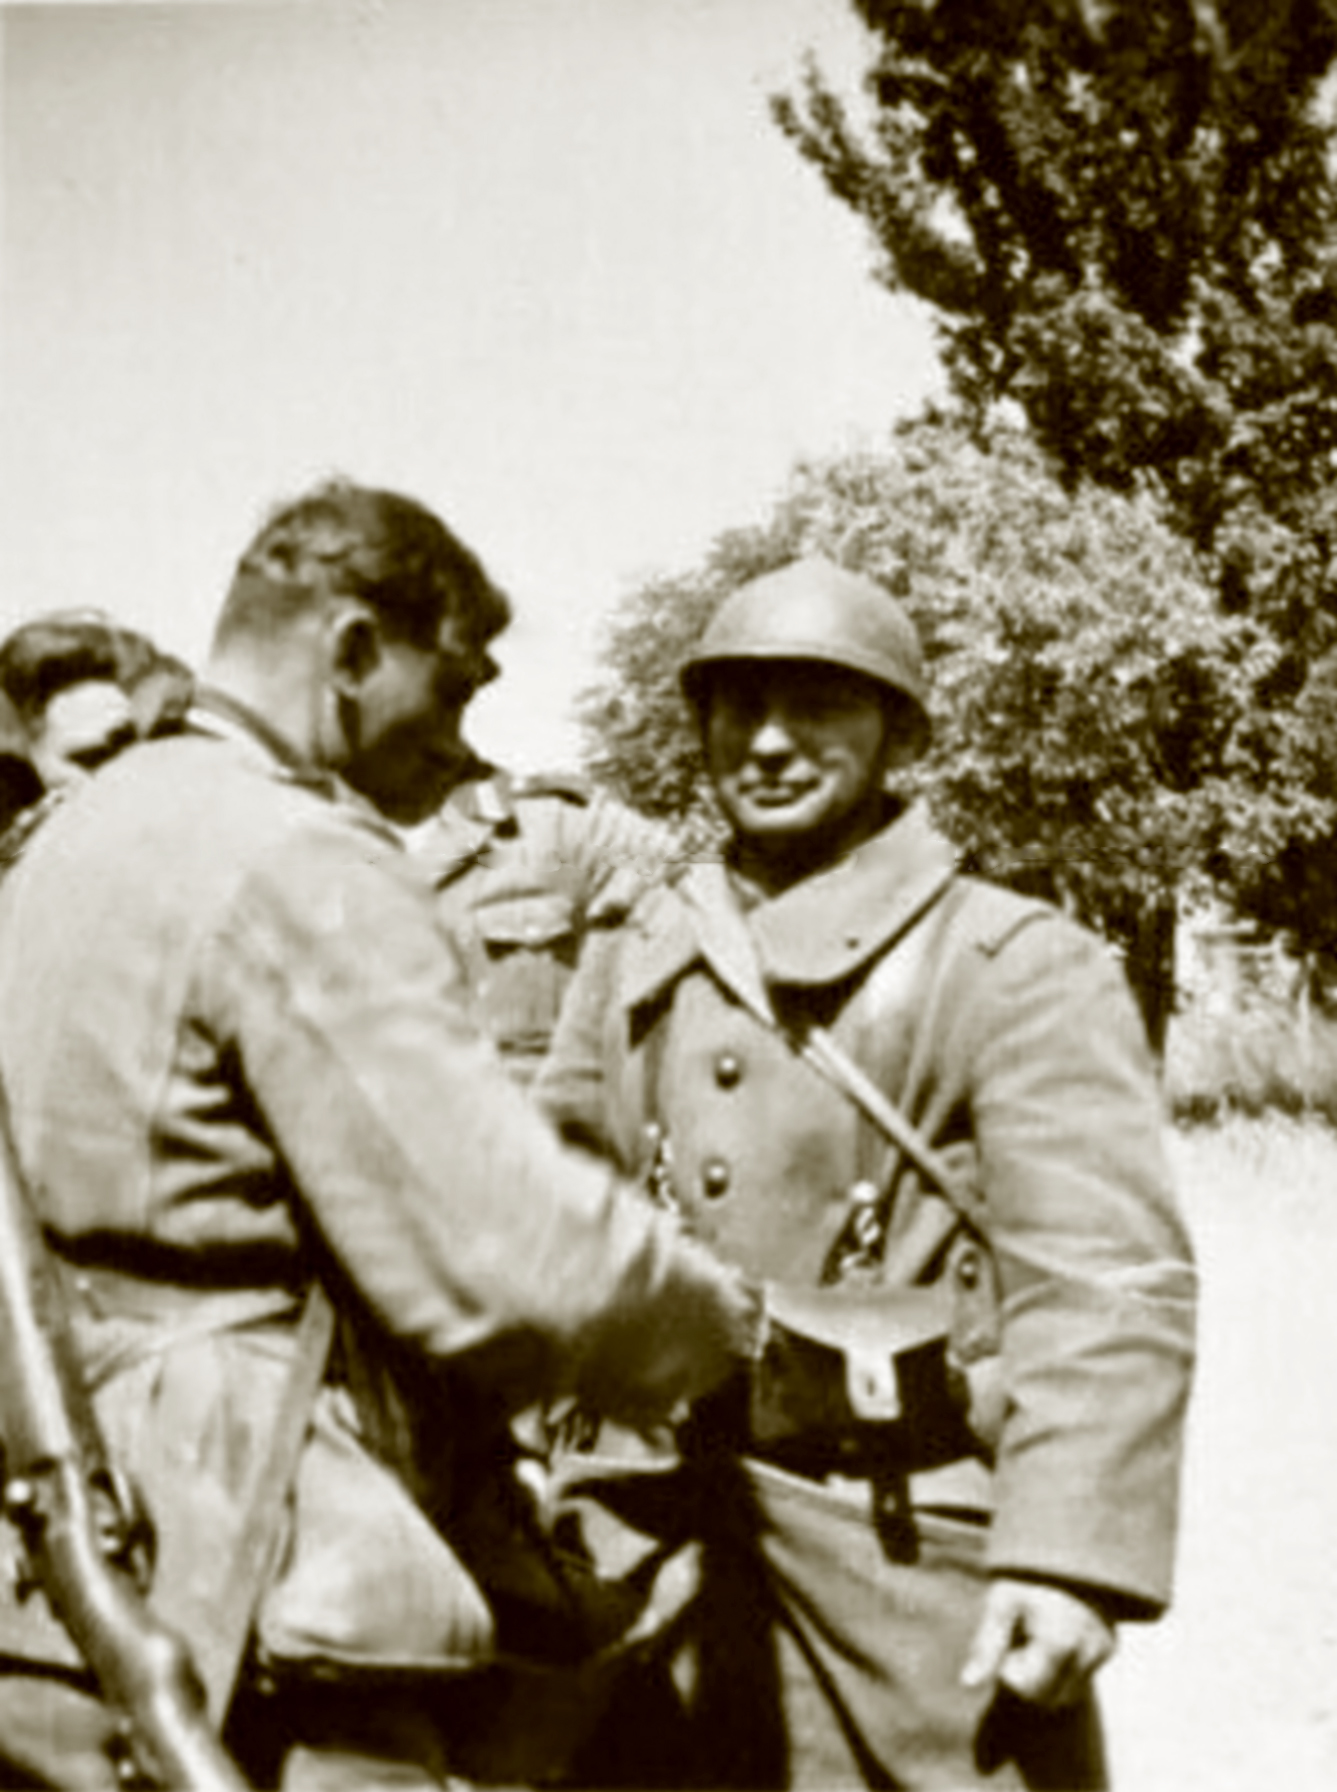 French soldier with clenched fist facing the humiliation of surrender May 1940 ebay 01